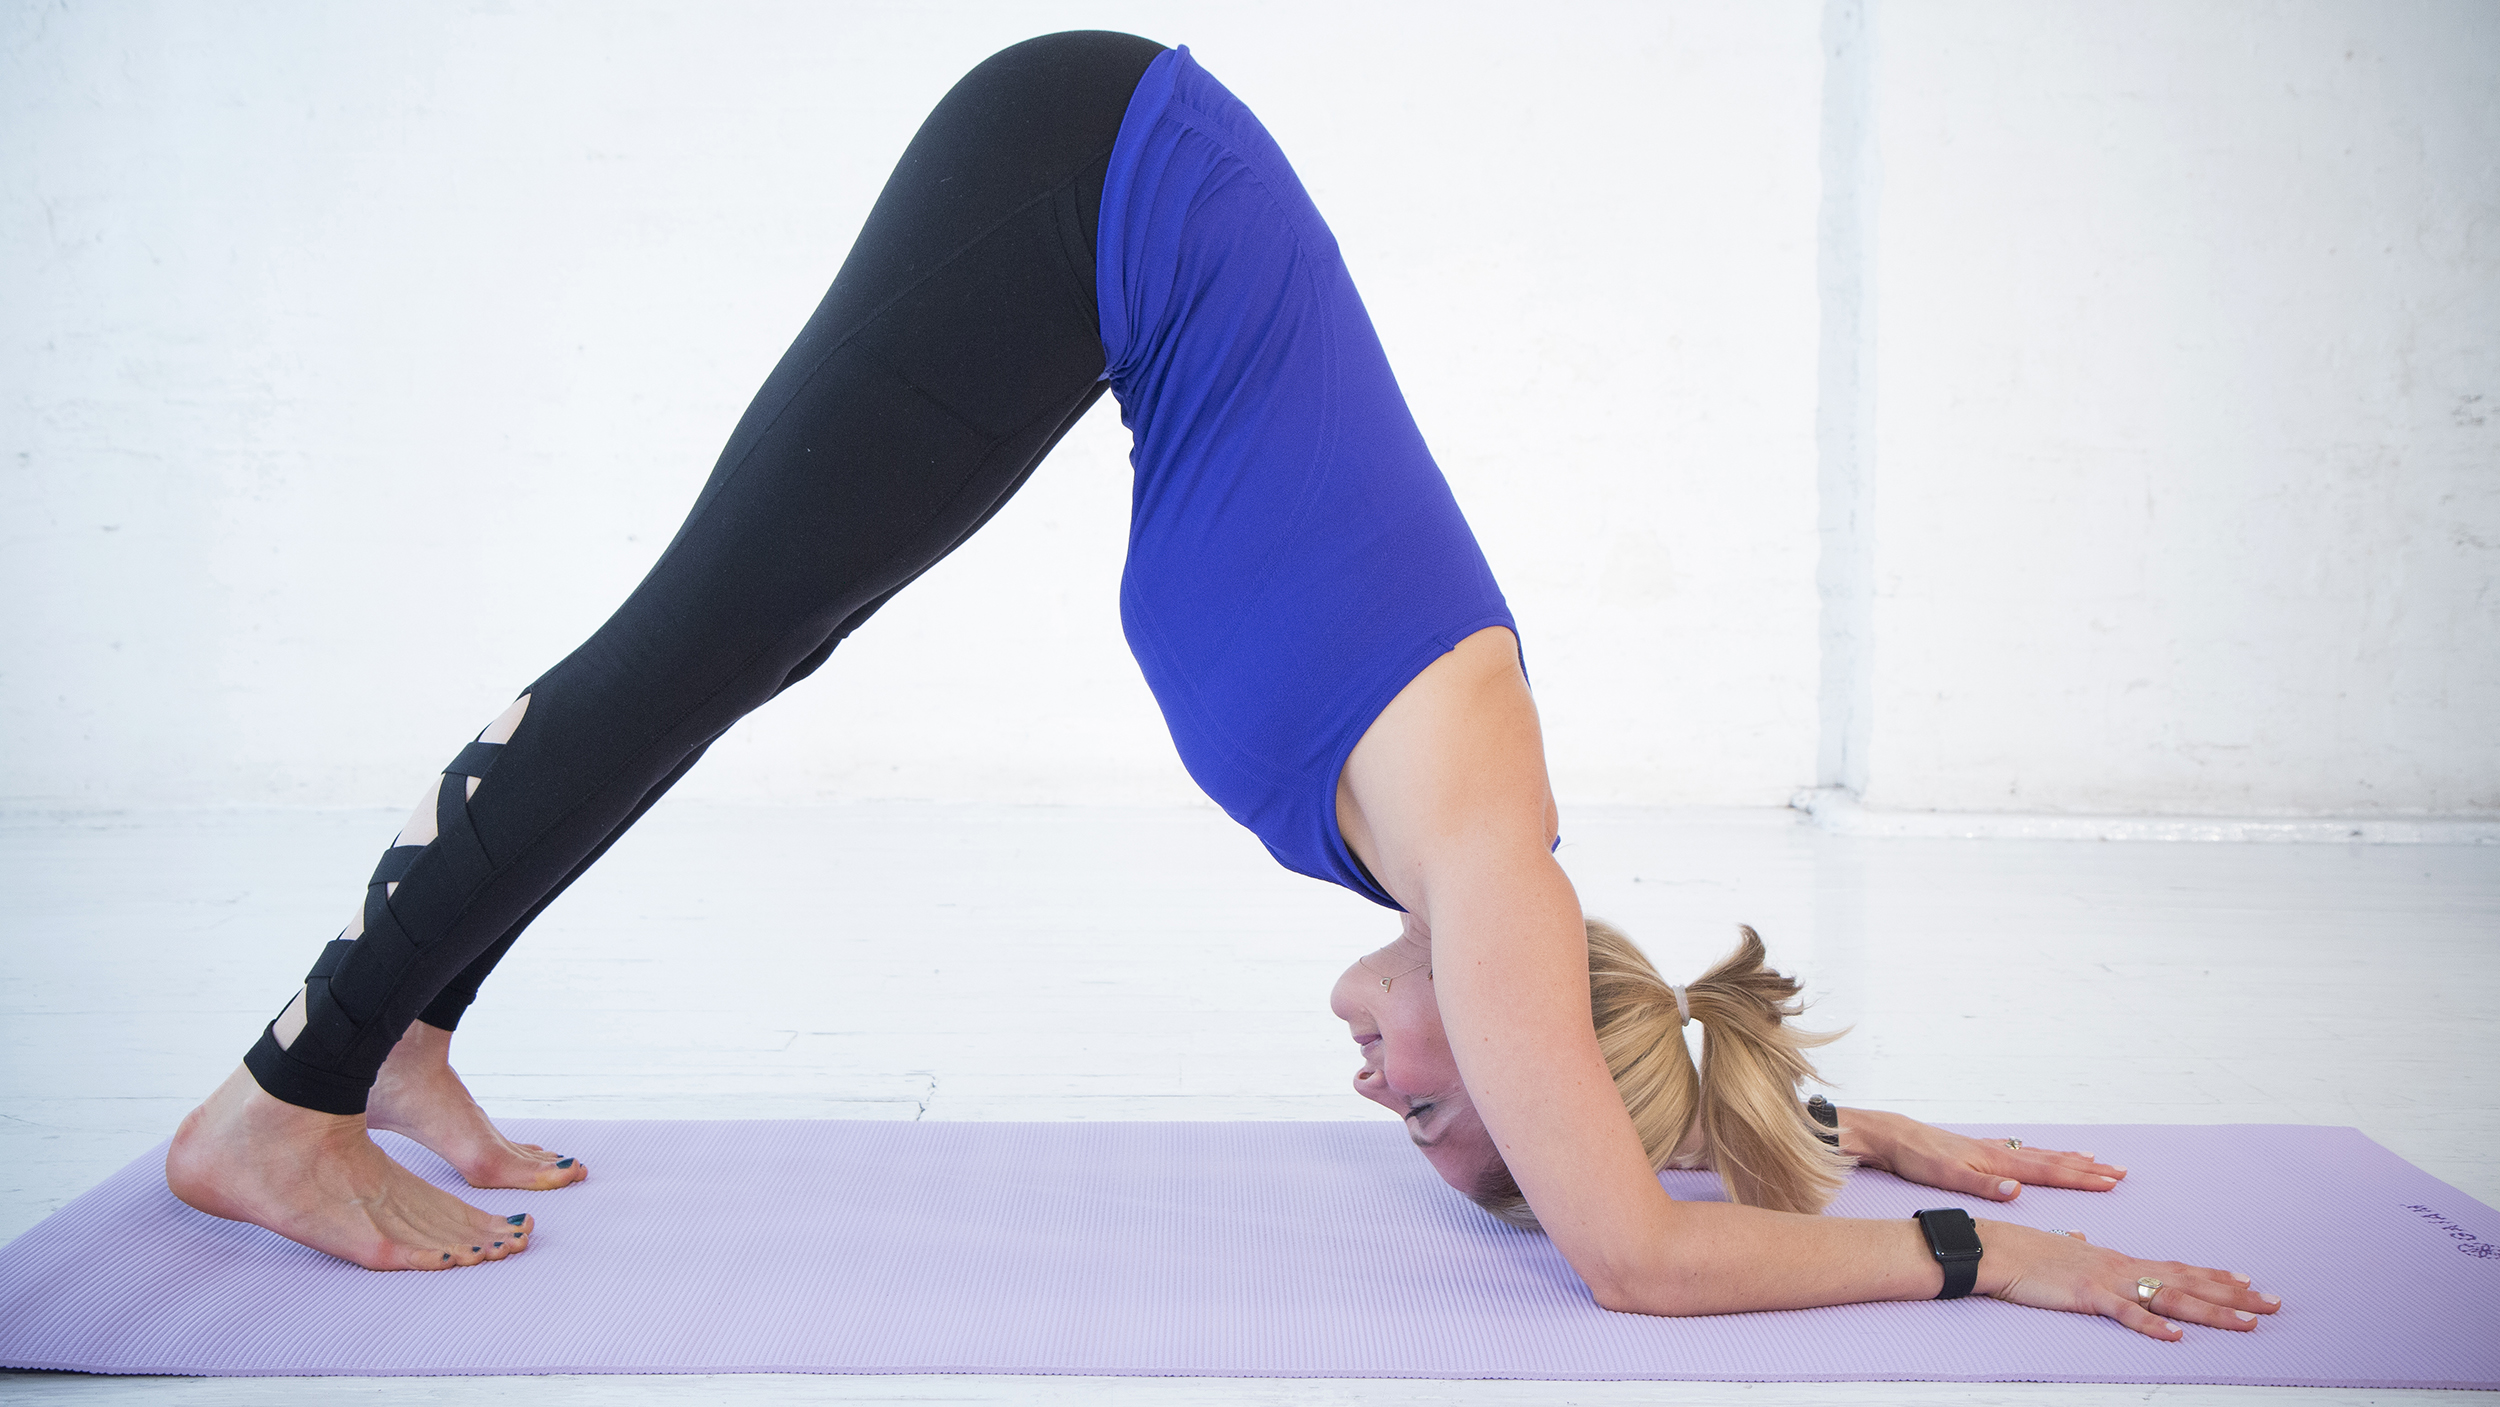 The 1 yoga pose to strengthen your arms